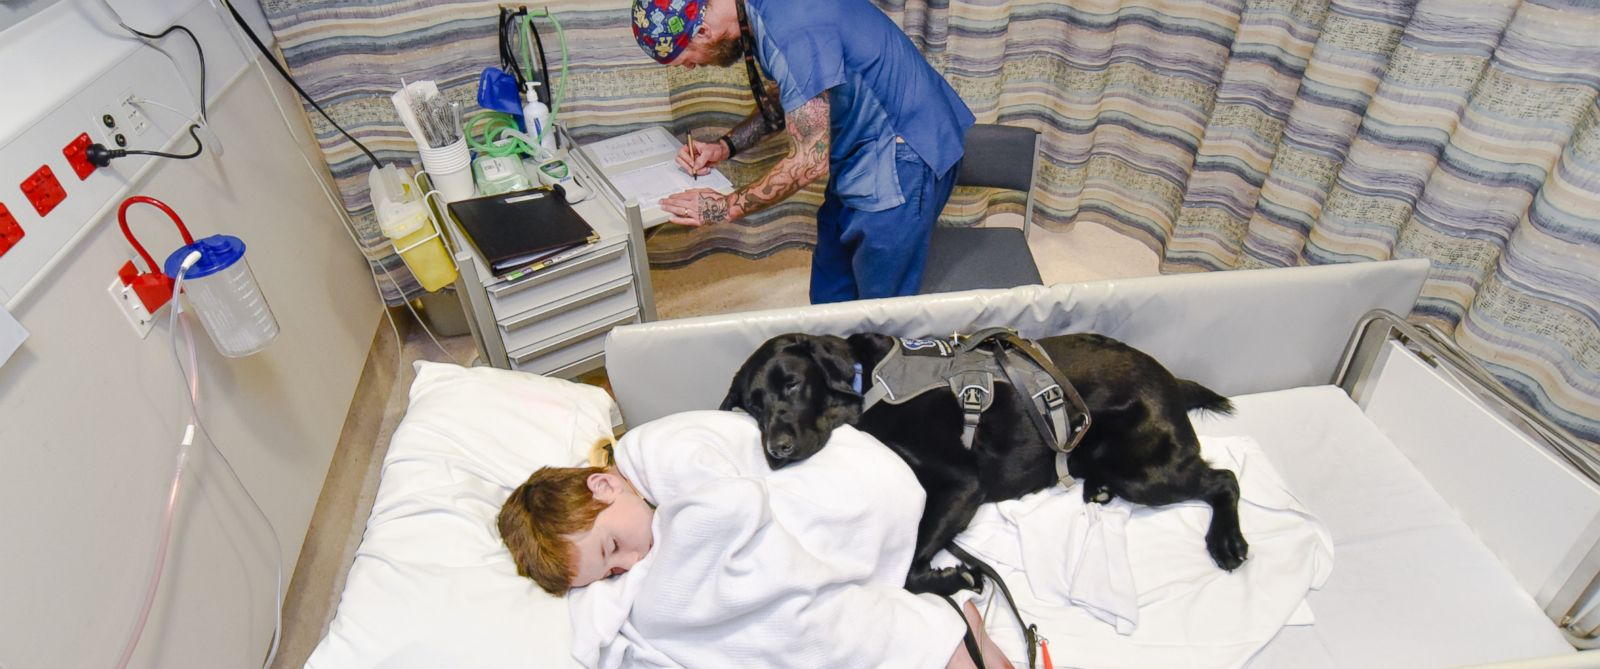 Loyal Dog Jumps on Hospital Bed to Comfort 9-Year-Old Boy With Autism